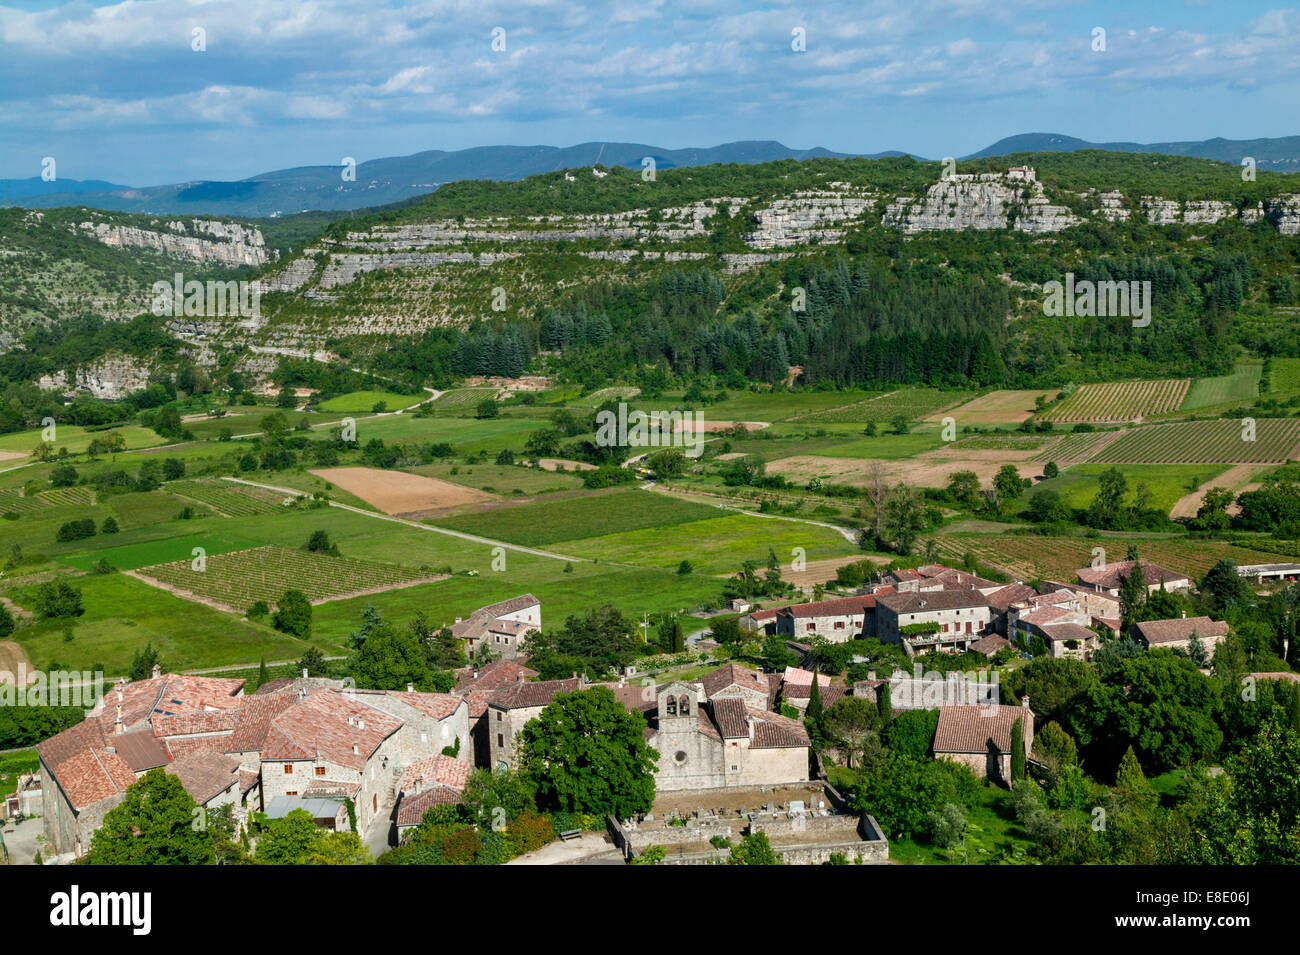 Chassagnes, Valley Of Chassezac,Ardeche,Rhone Alpes,France - Stock Image